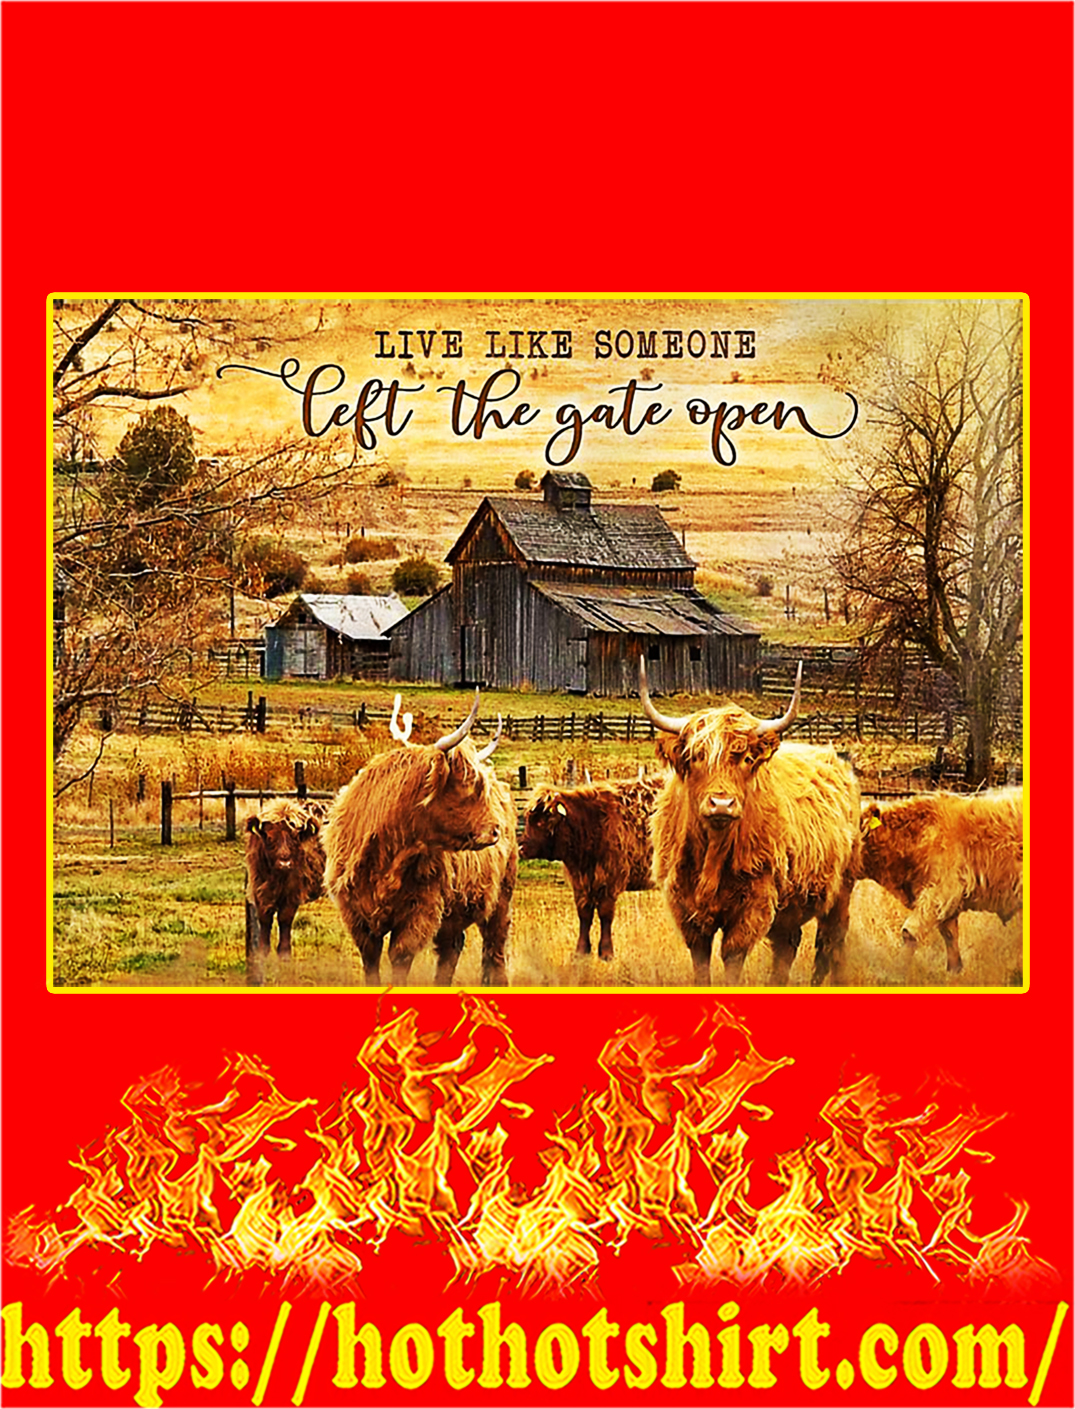 Highland cattle live like someone left the gate open poster - A2